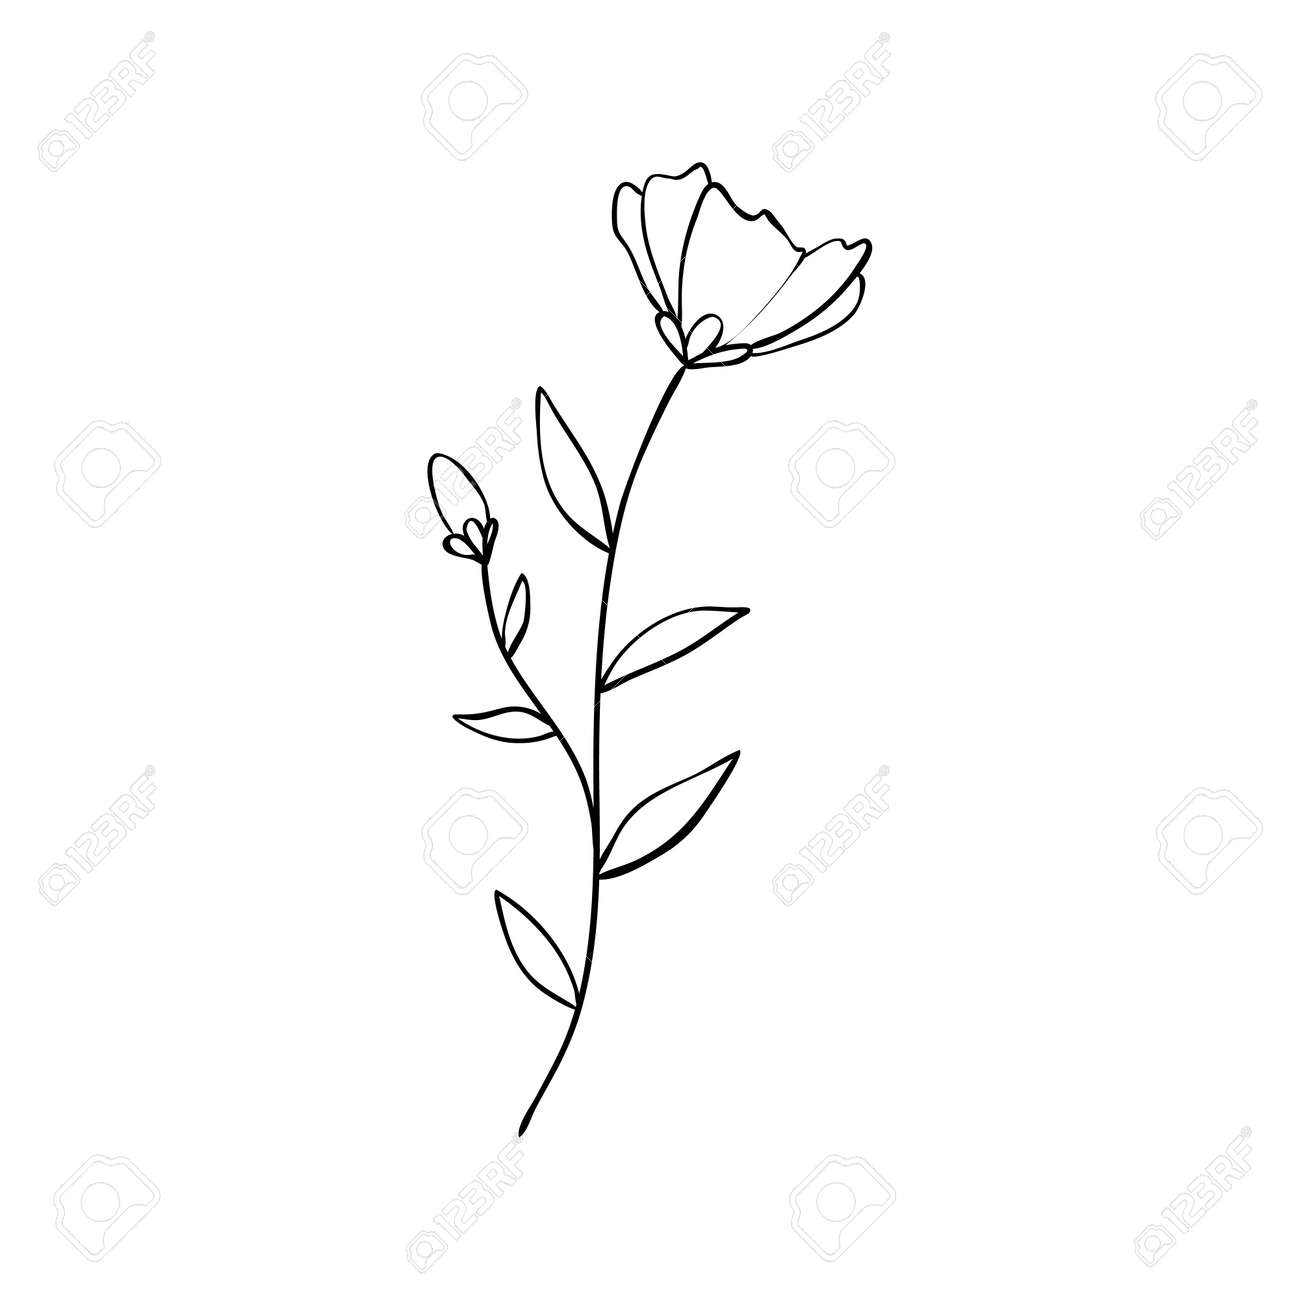 Sketch a leaf branch by hand on an isolated background. Vector, illustration - 168290708